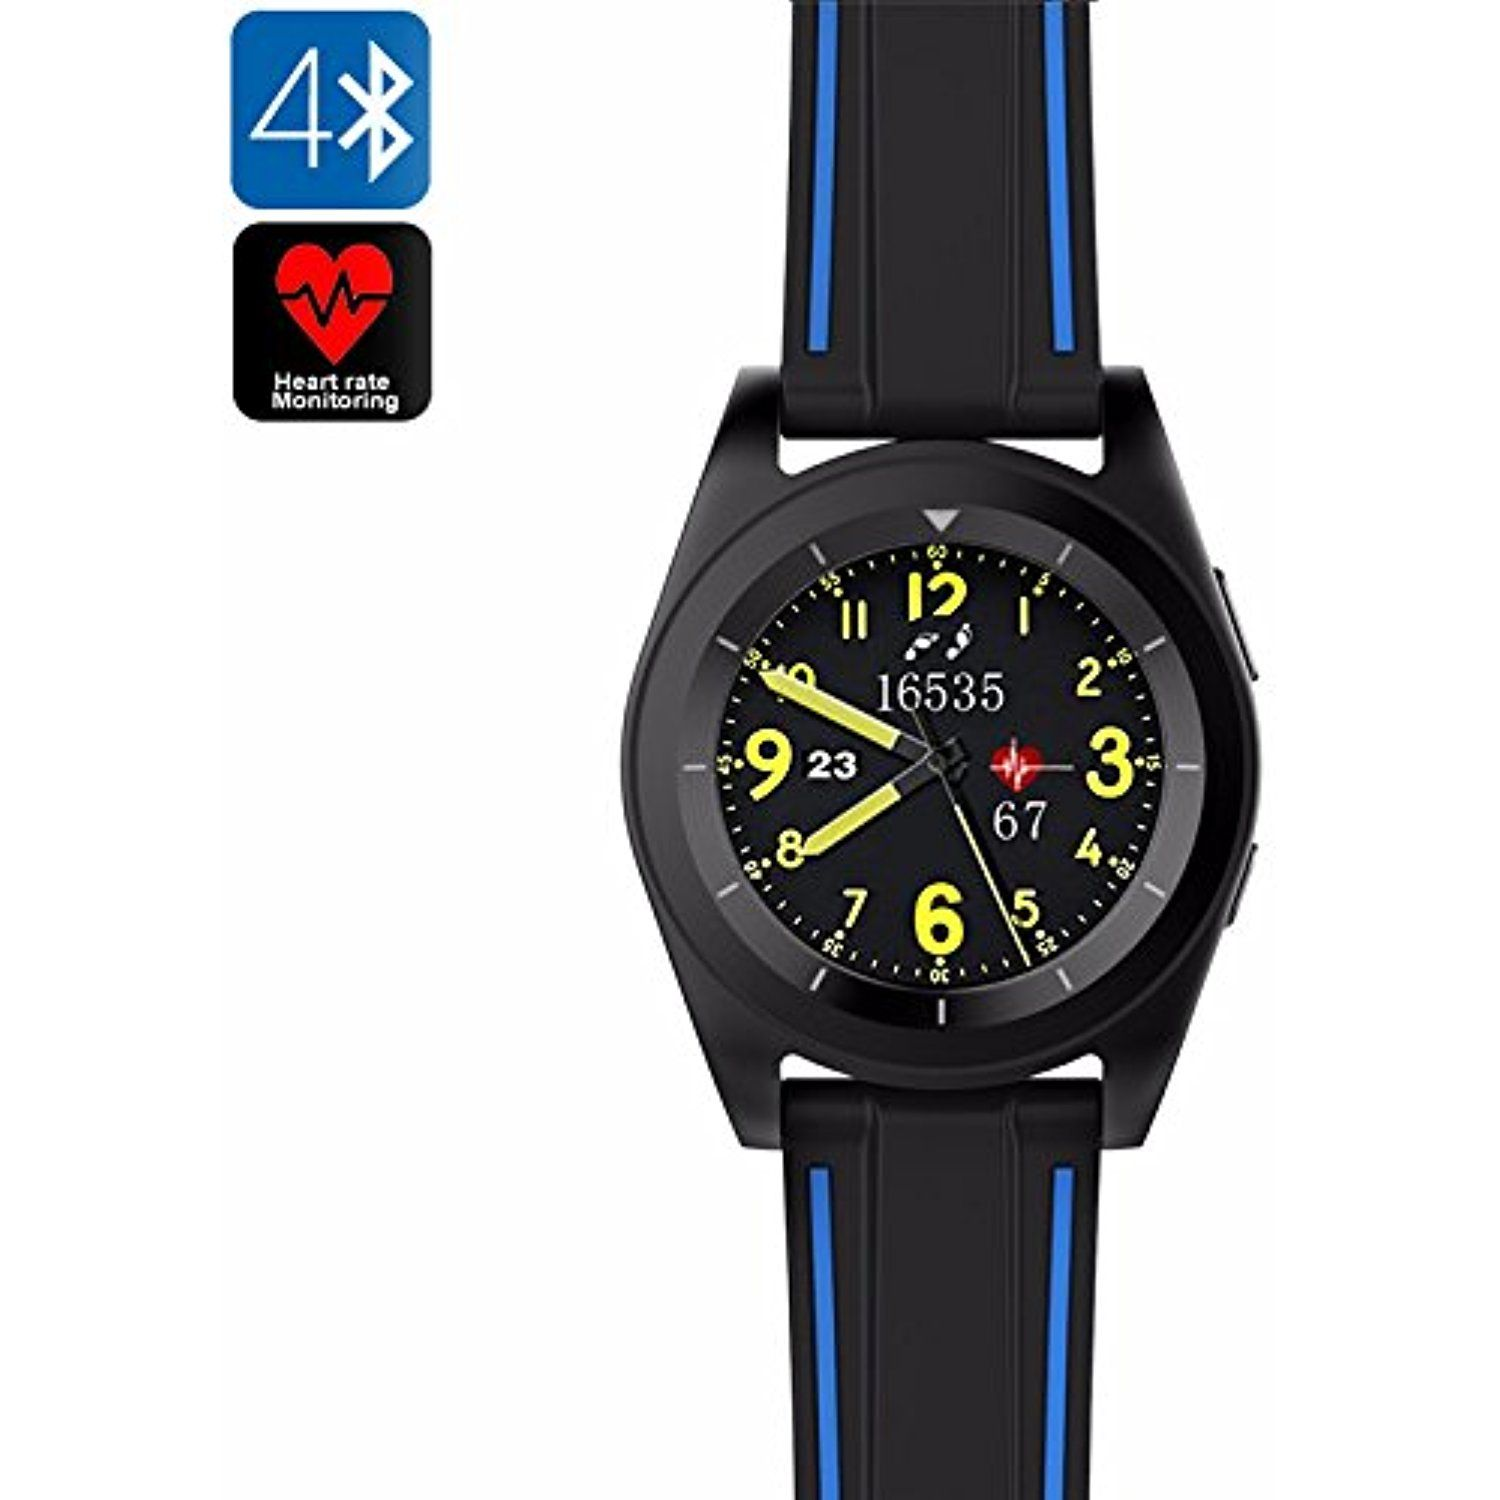 Generic No.1 G6 Sports Watch Heart Rate Monitor